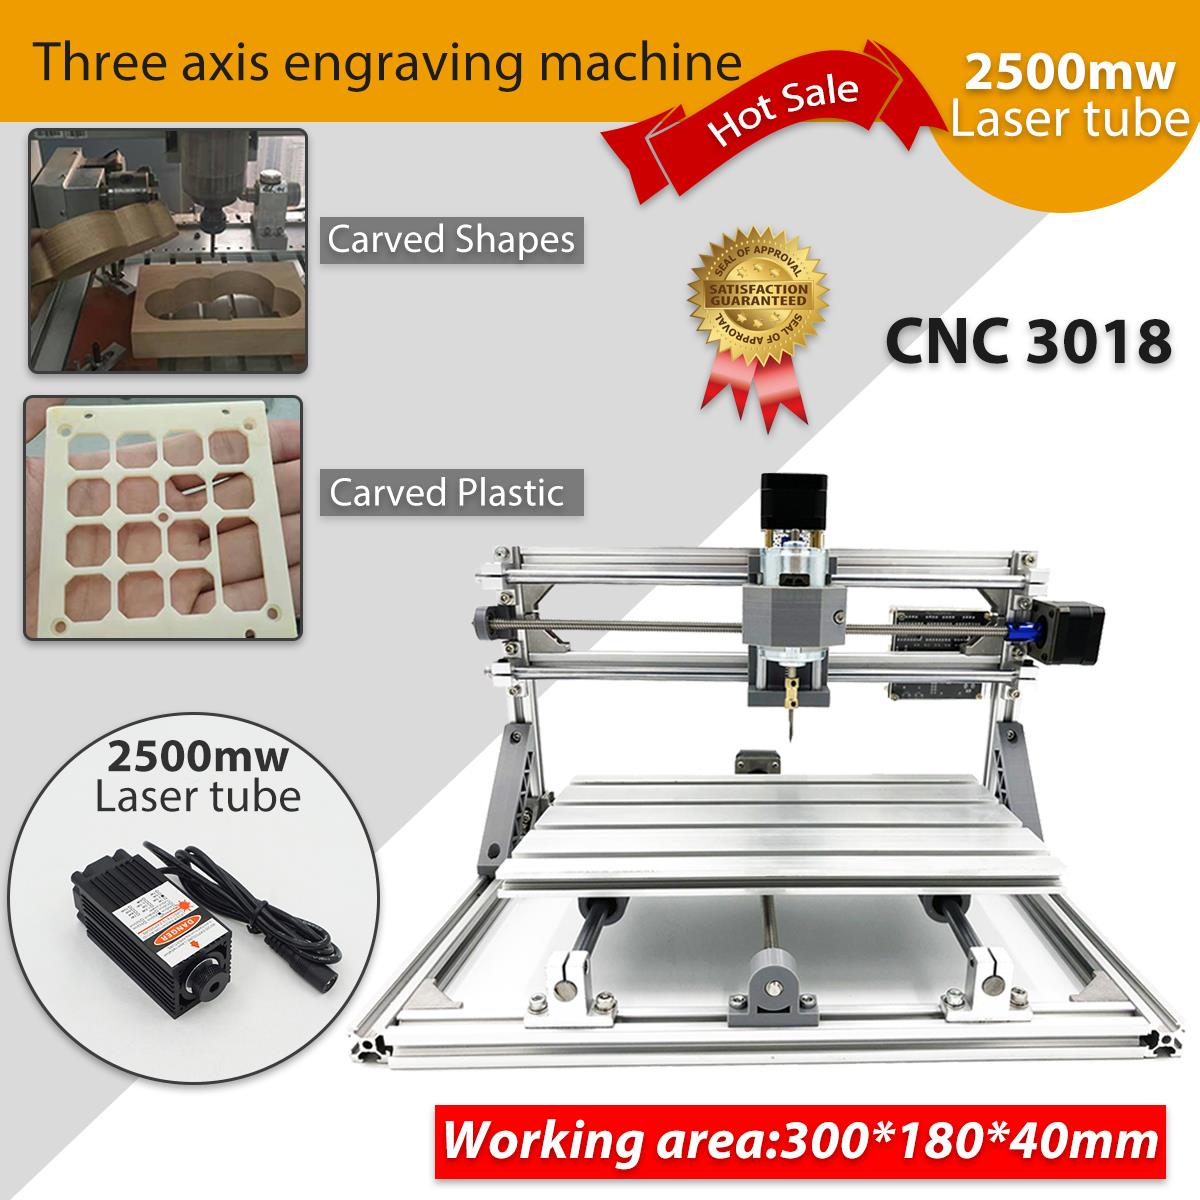 CNC DIY 3018 Wood Router KIt 3 Axis pcb Milling Machine Engraving Machine 2500mw diy cnc router milling machine 2020 frame kit wood engraving cutting